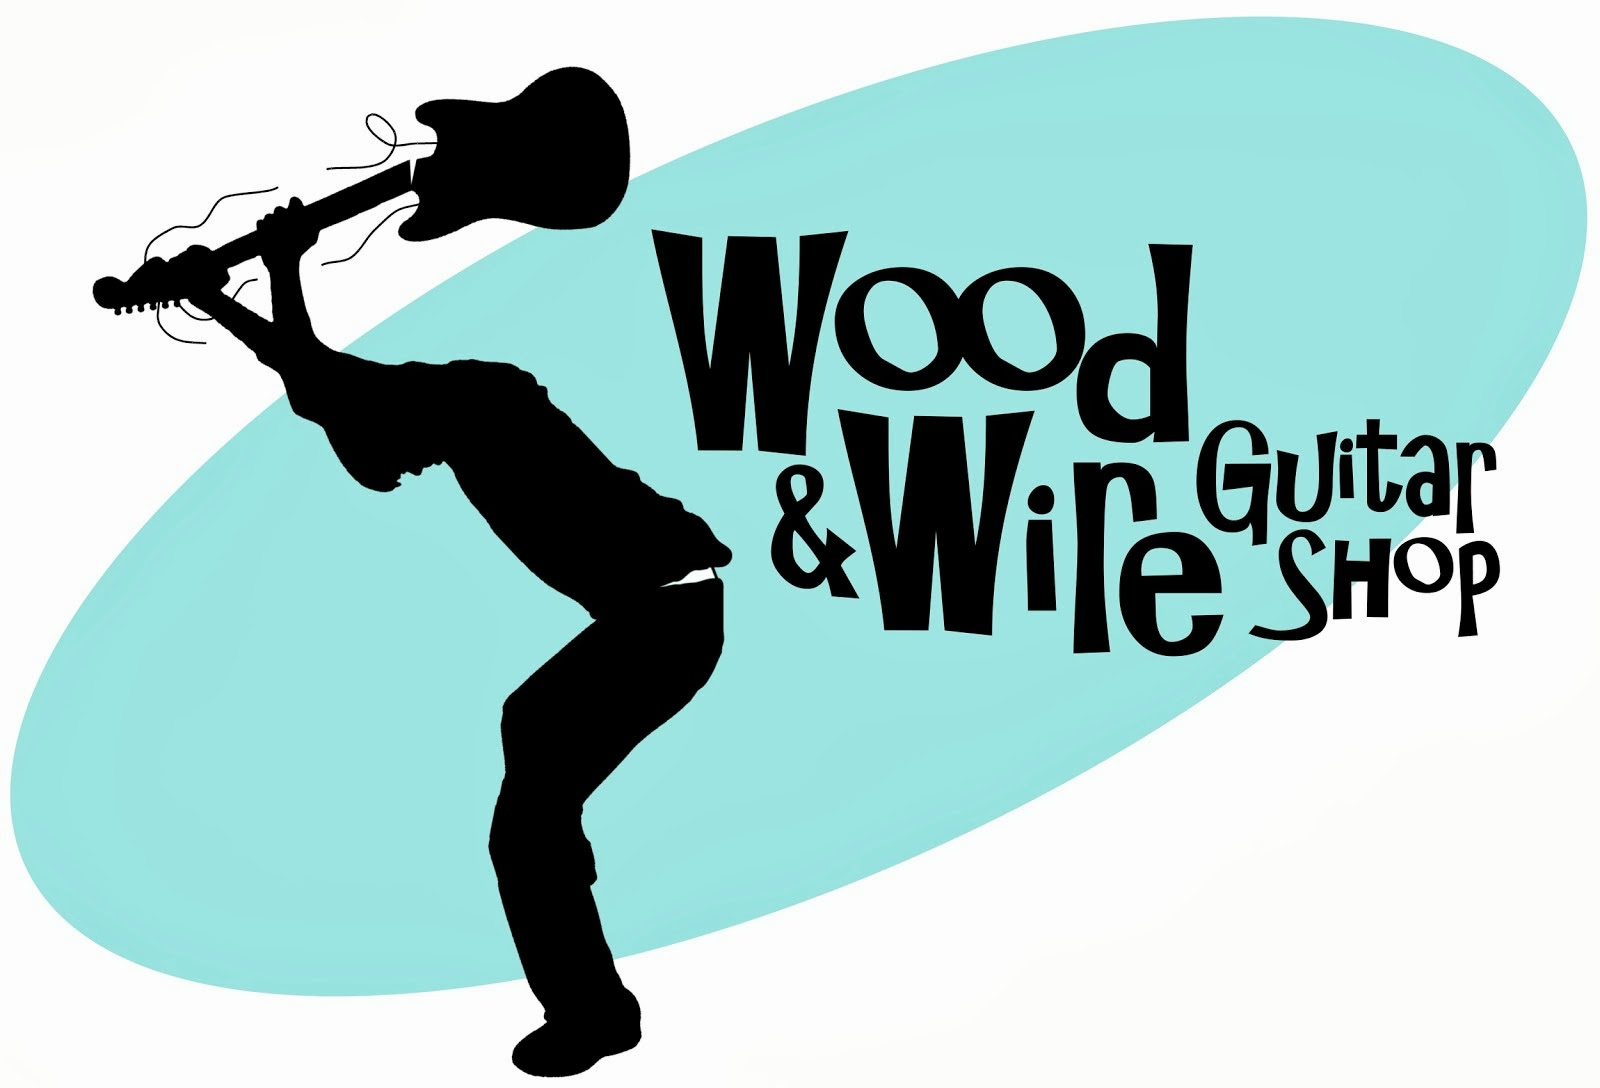 Wood & Wire Guitar Shop Blog